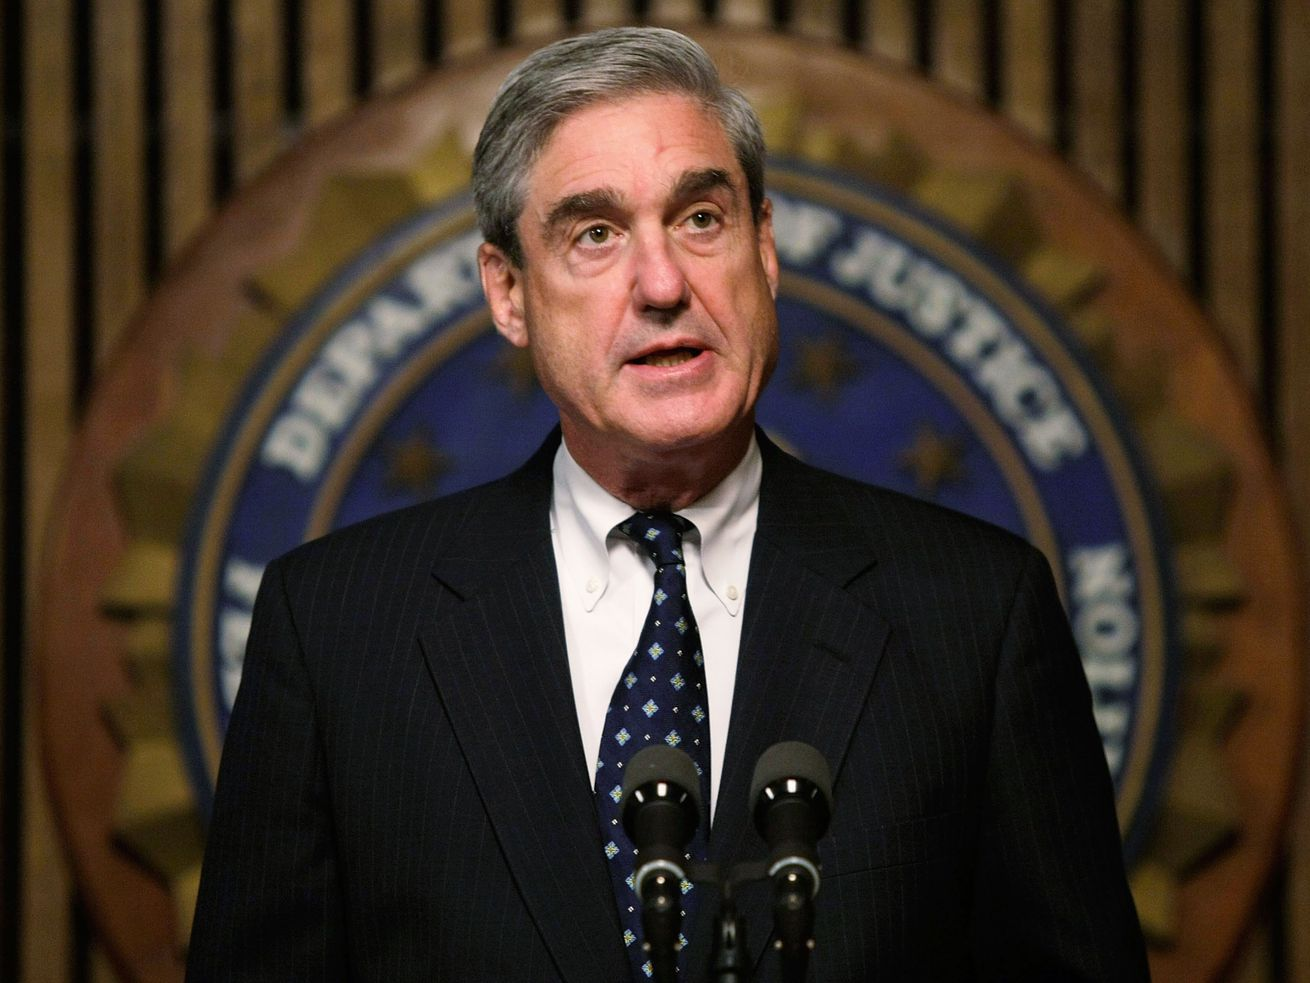 The House just passed a resolution to make Robert Mueller's report public